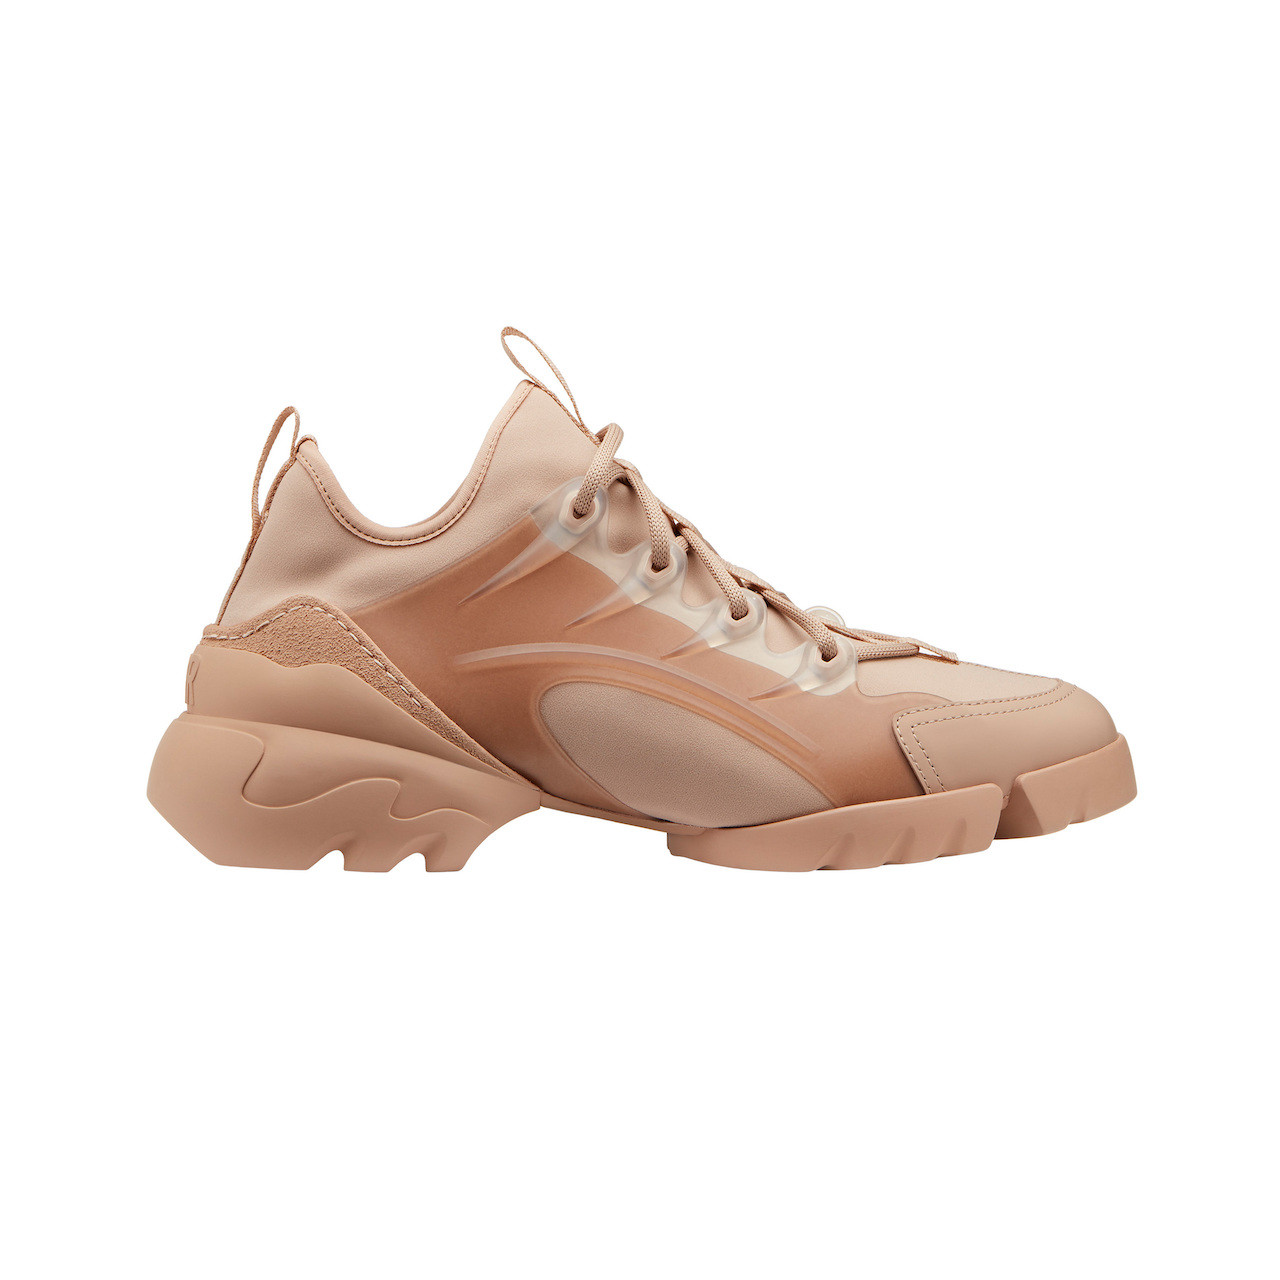 The D-Connect sneaker in nude neoprene and technical fabric, transparent rubber layer, oversize sole at the back with D.I.O.R. signature.